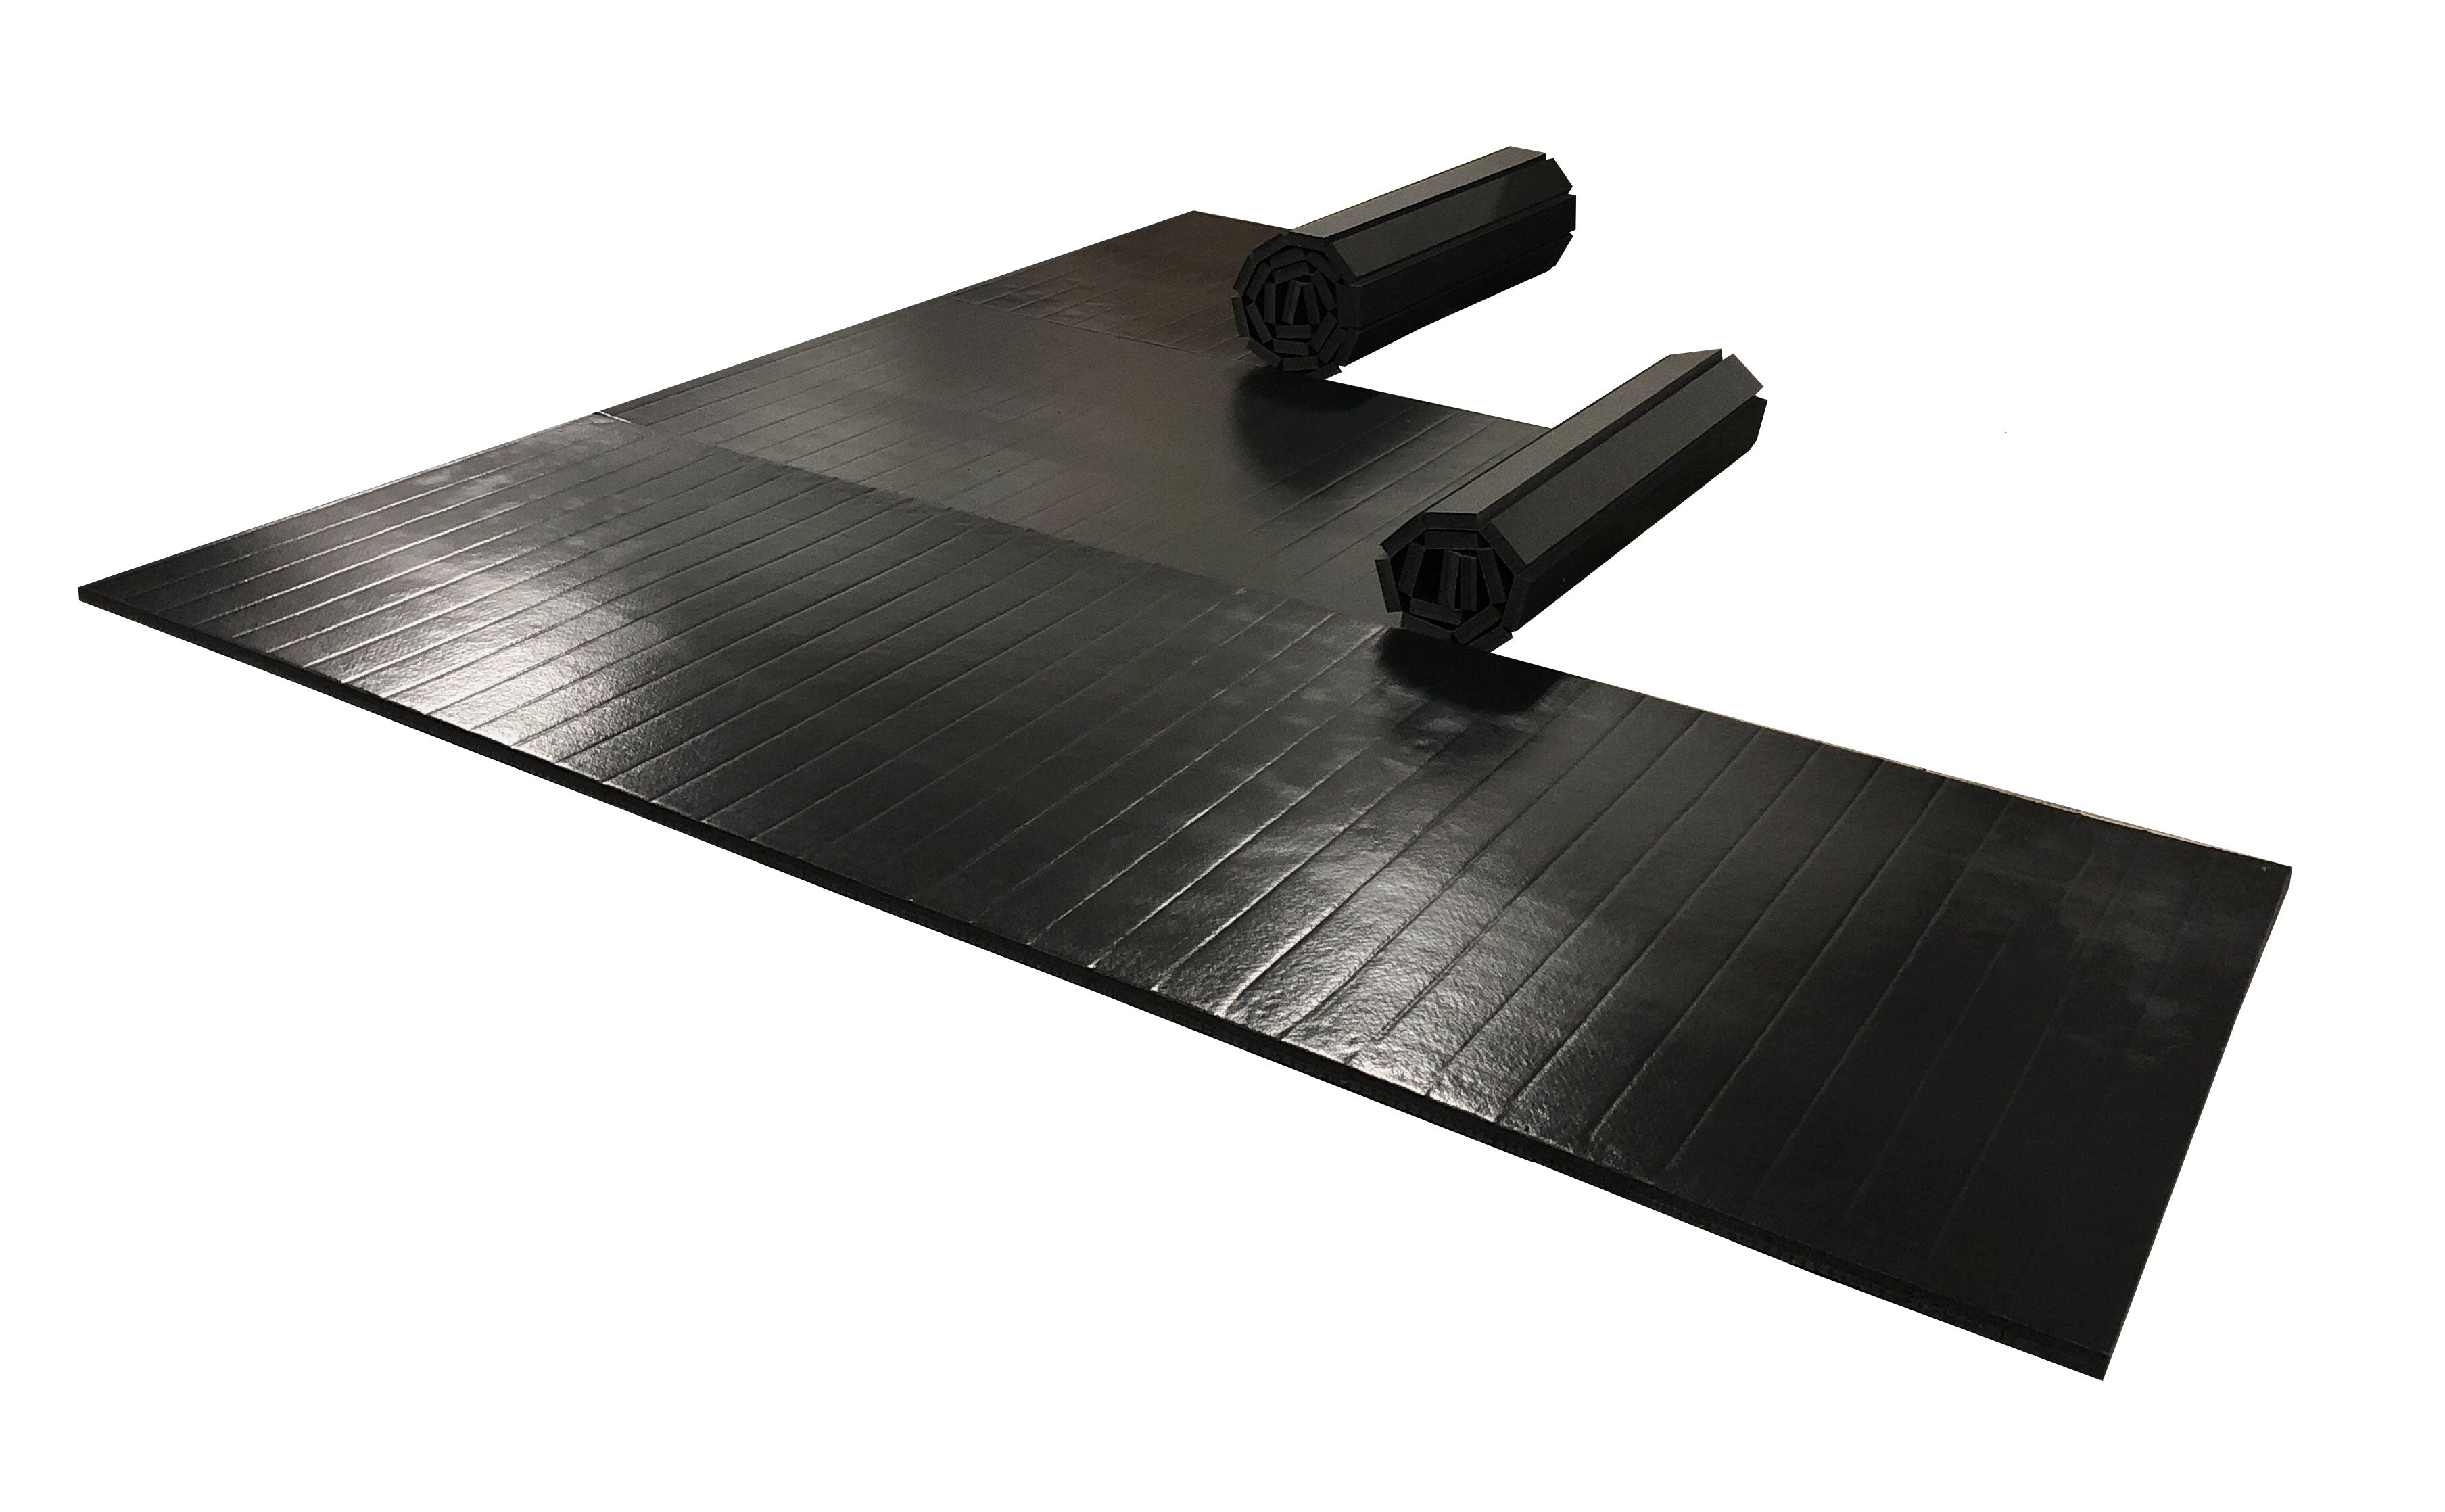 12' x 12' roll up black wrestling mat